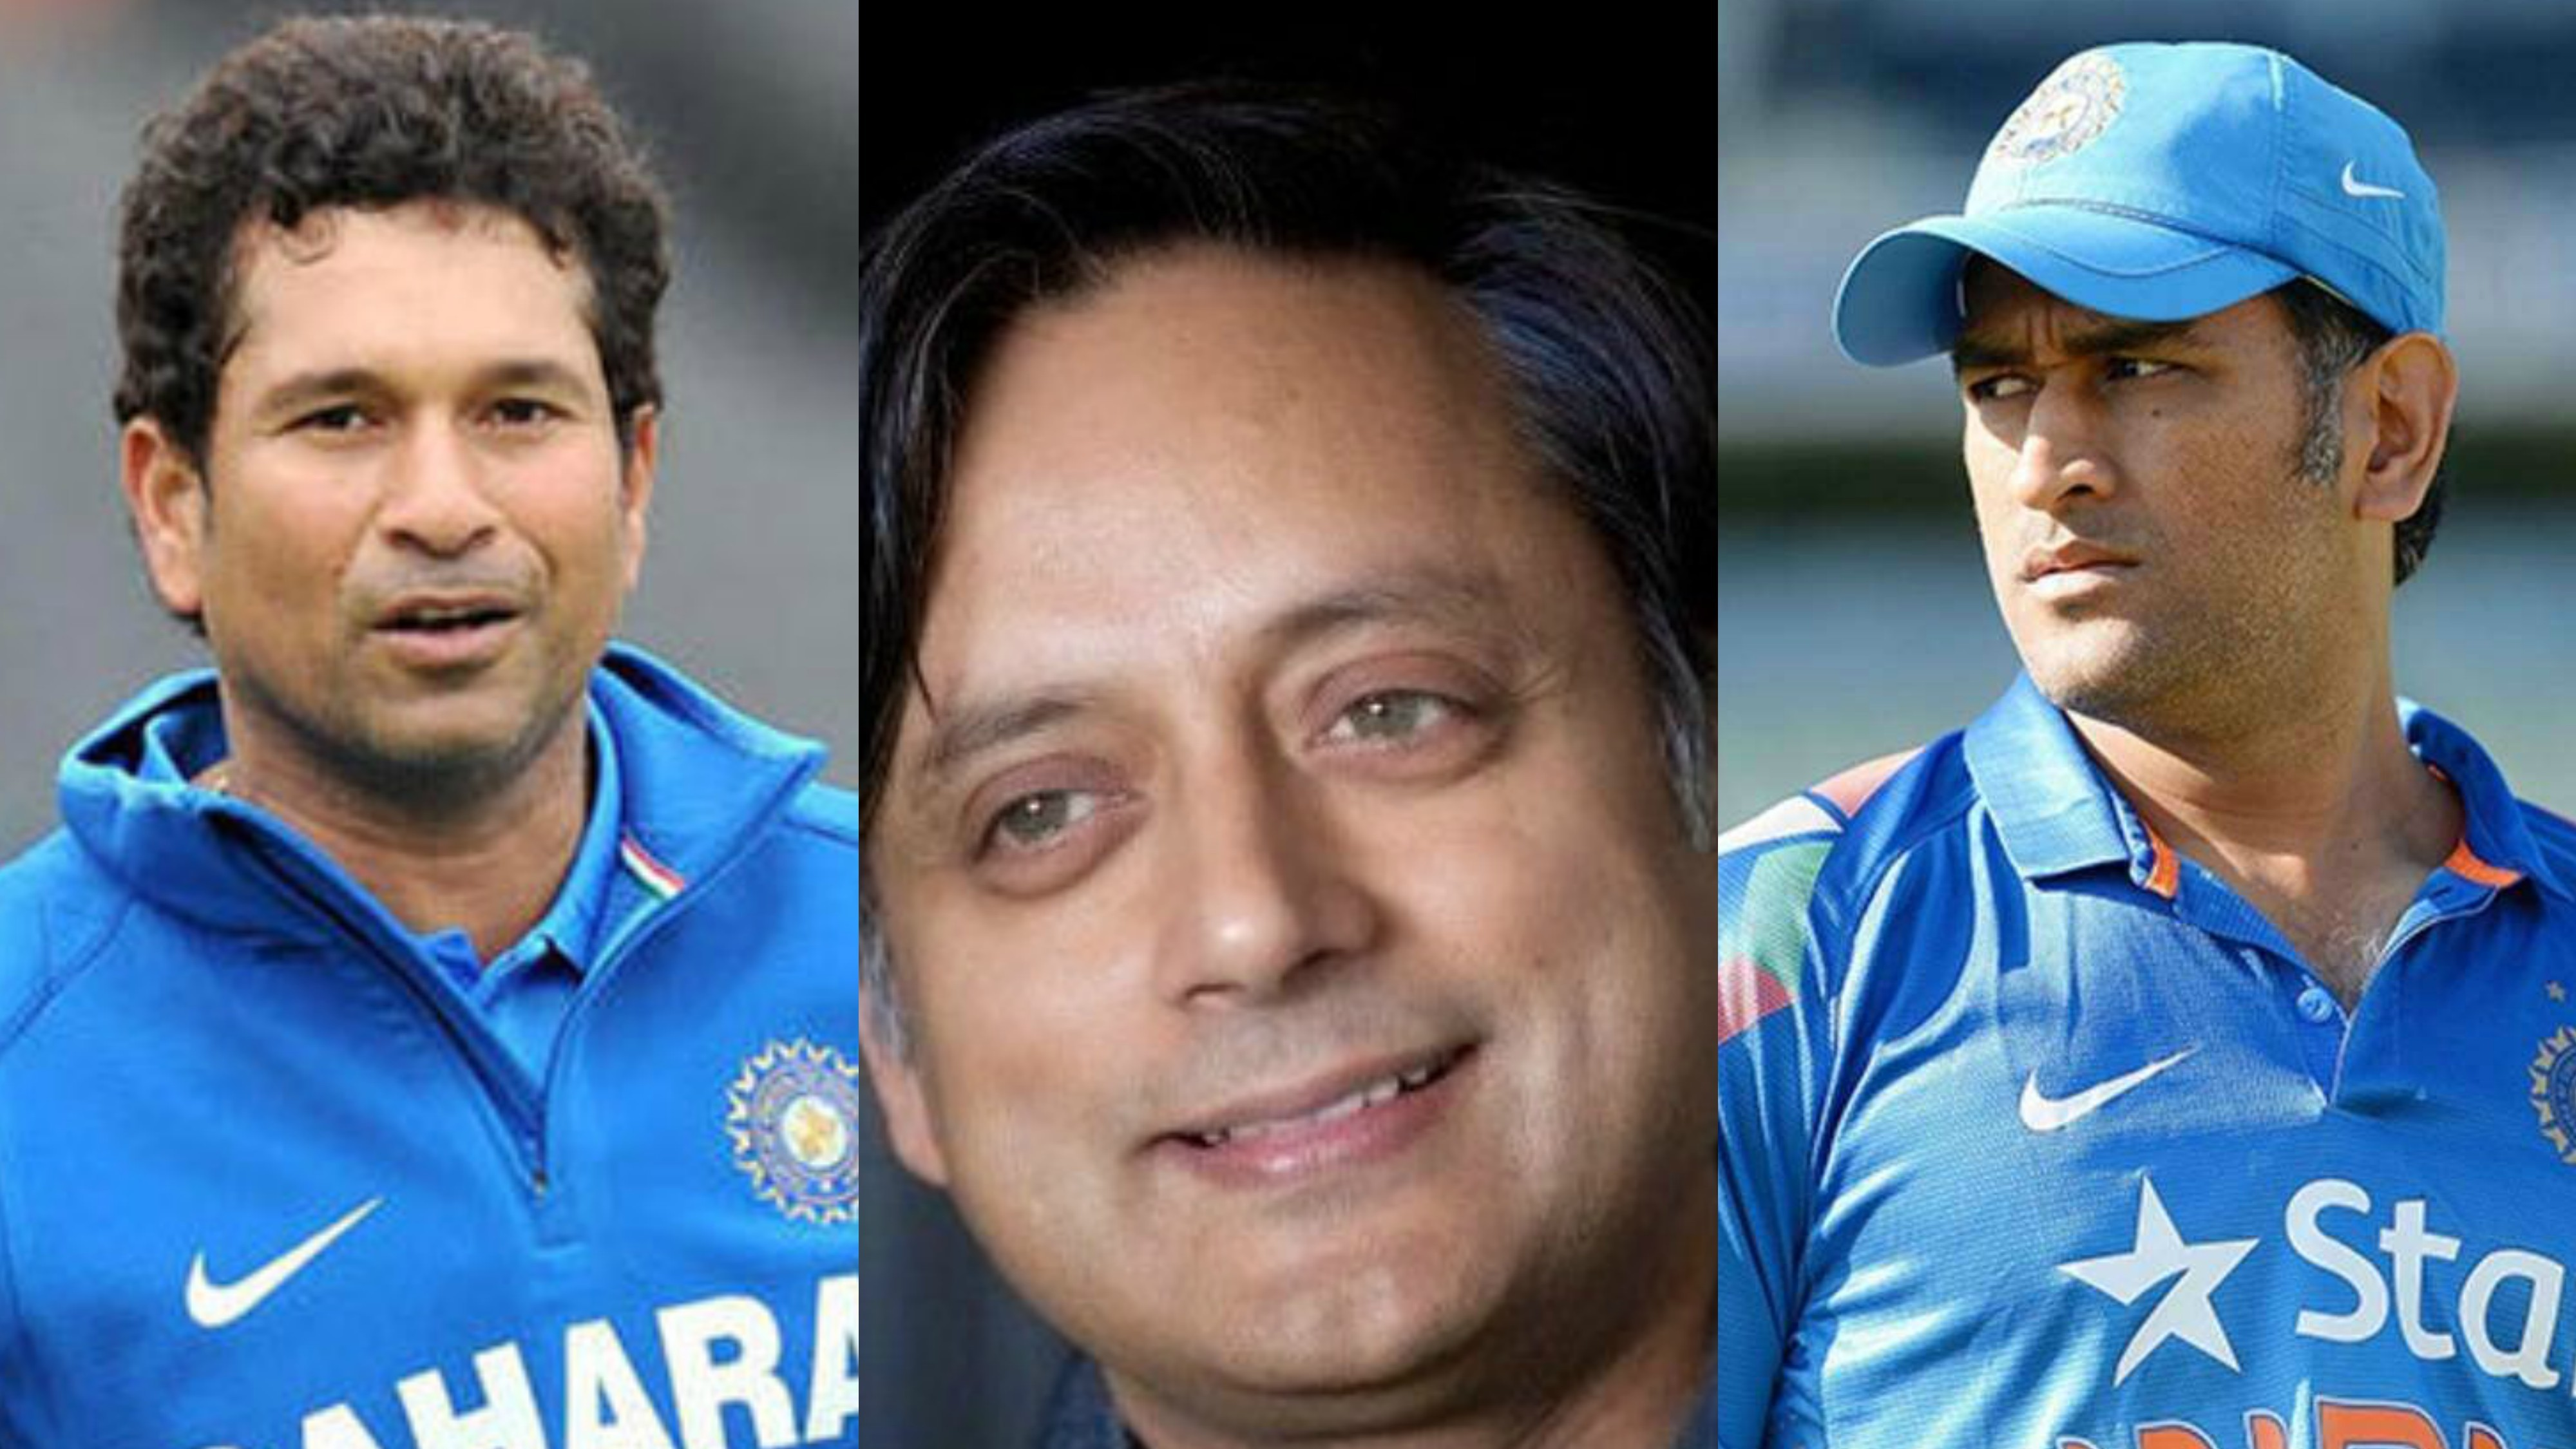 Was extremely upset with Dhoni and Tendulkar for not embracing DRS earlier: Shashi Tharoor